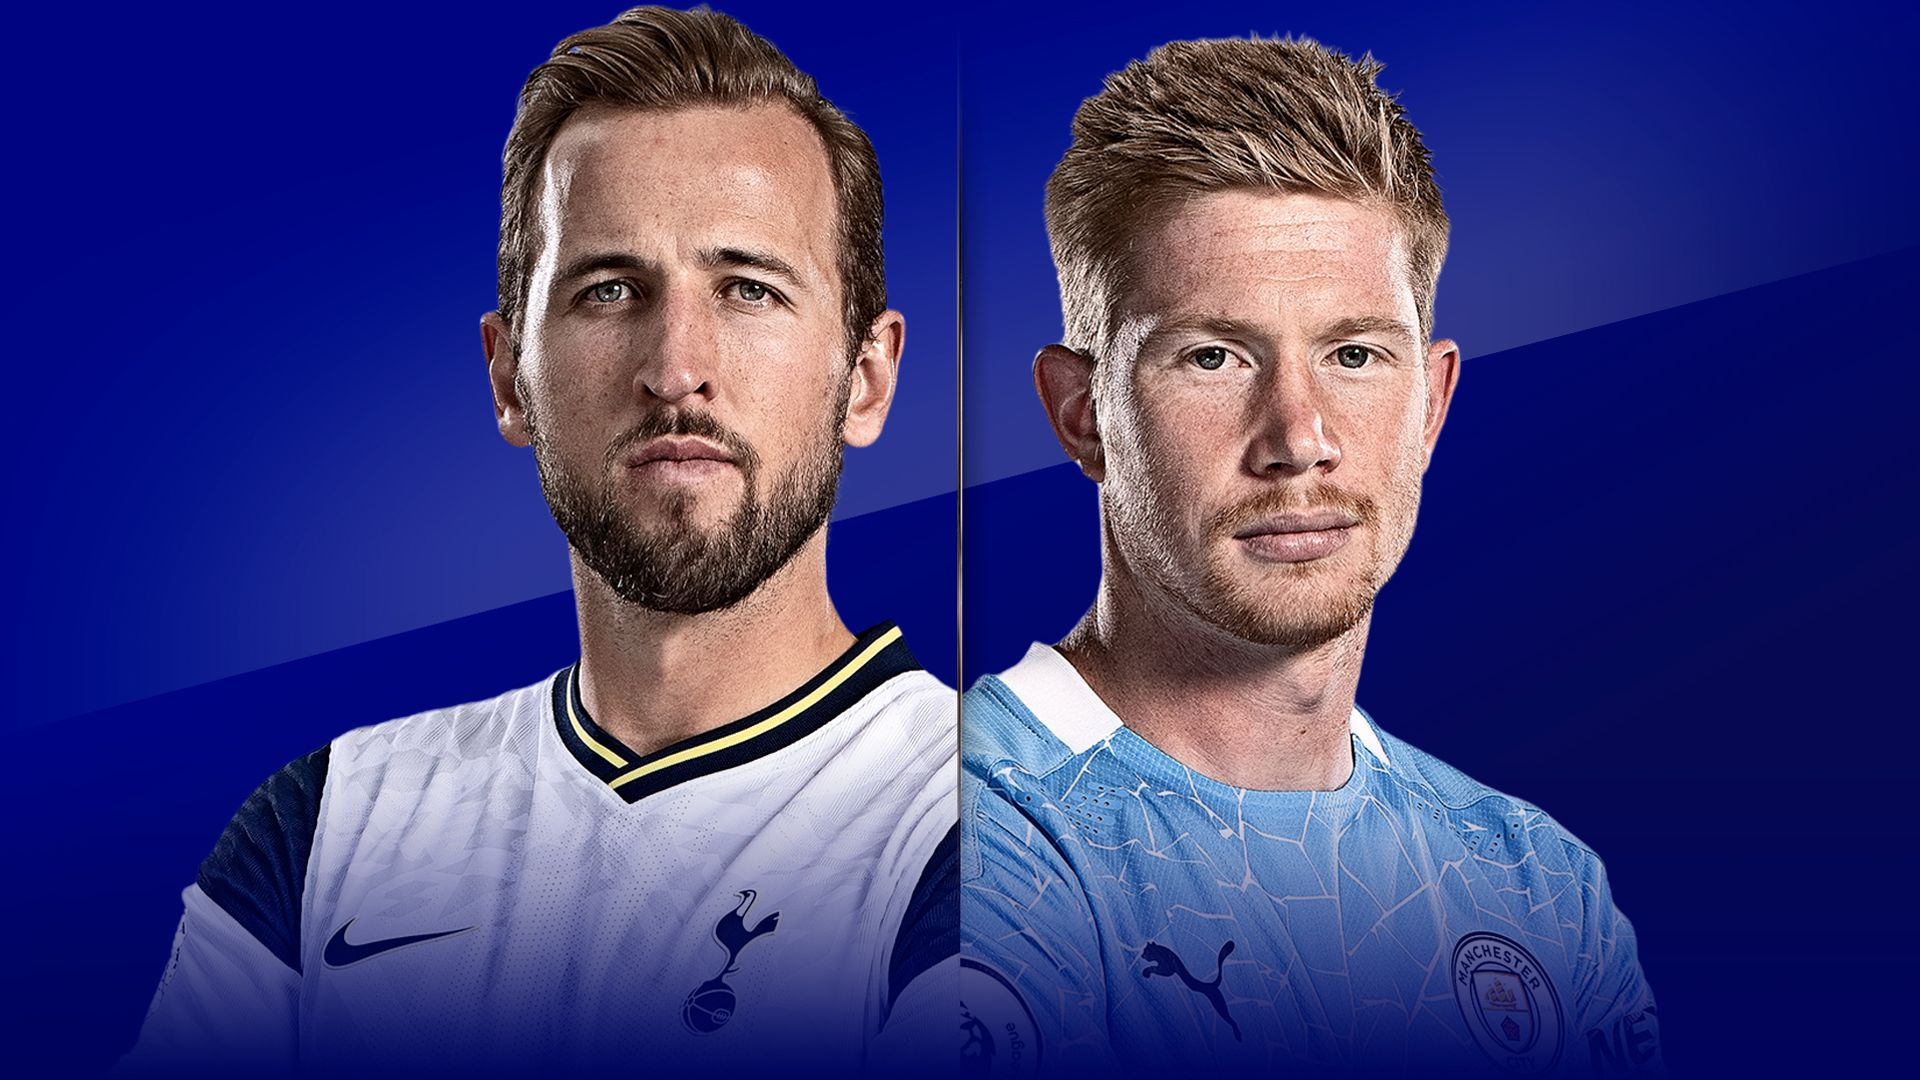 Will Spurs topple City and stake title claim?